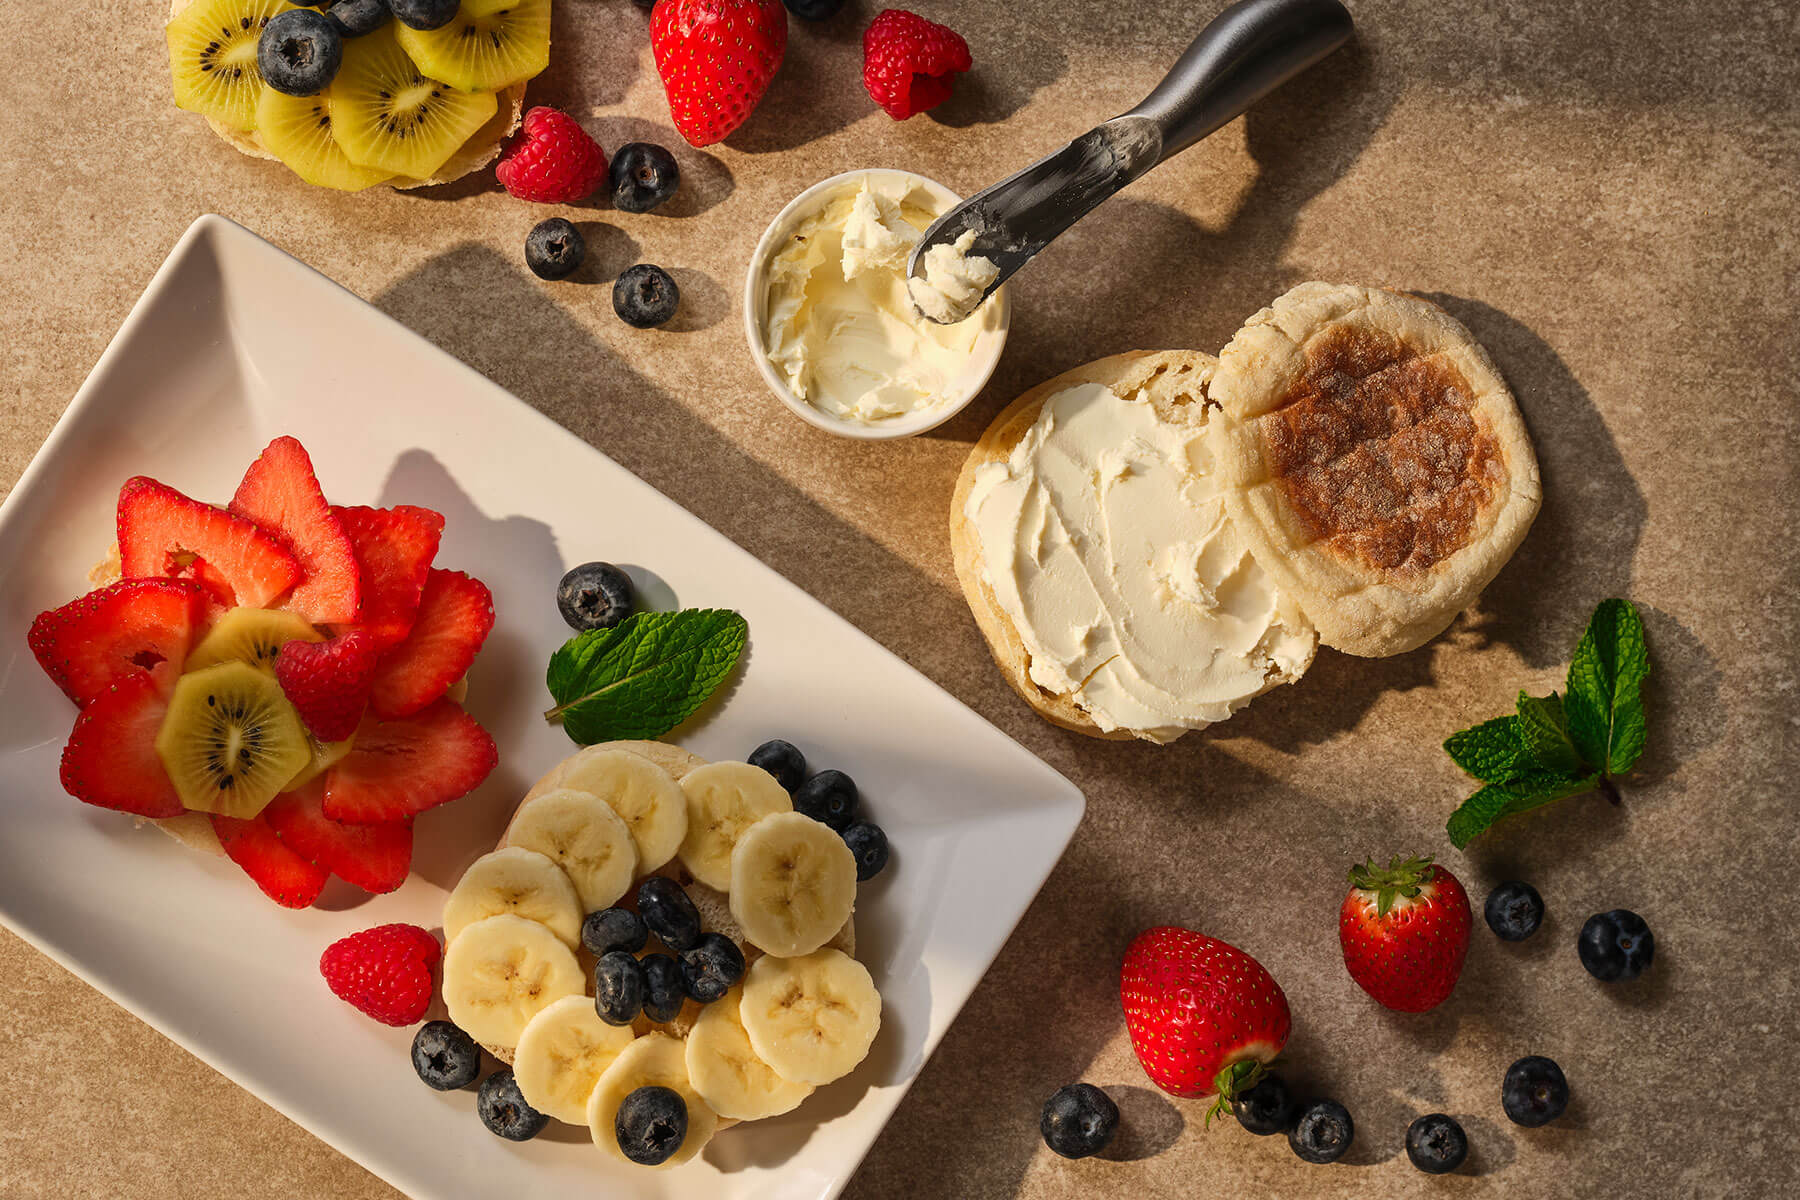 fresh fruit and baked goods